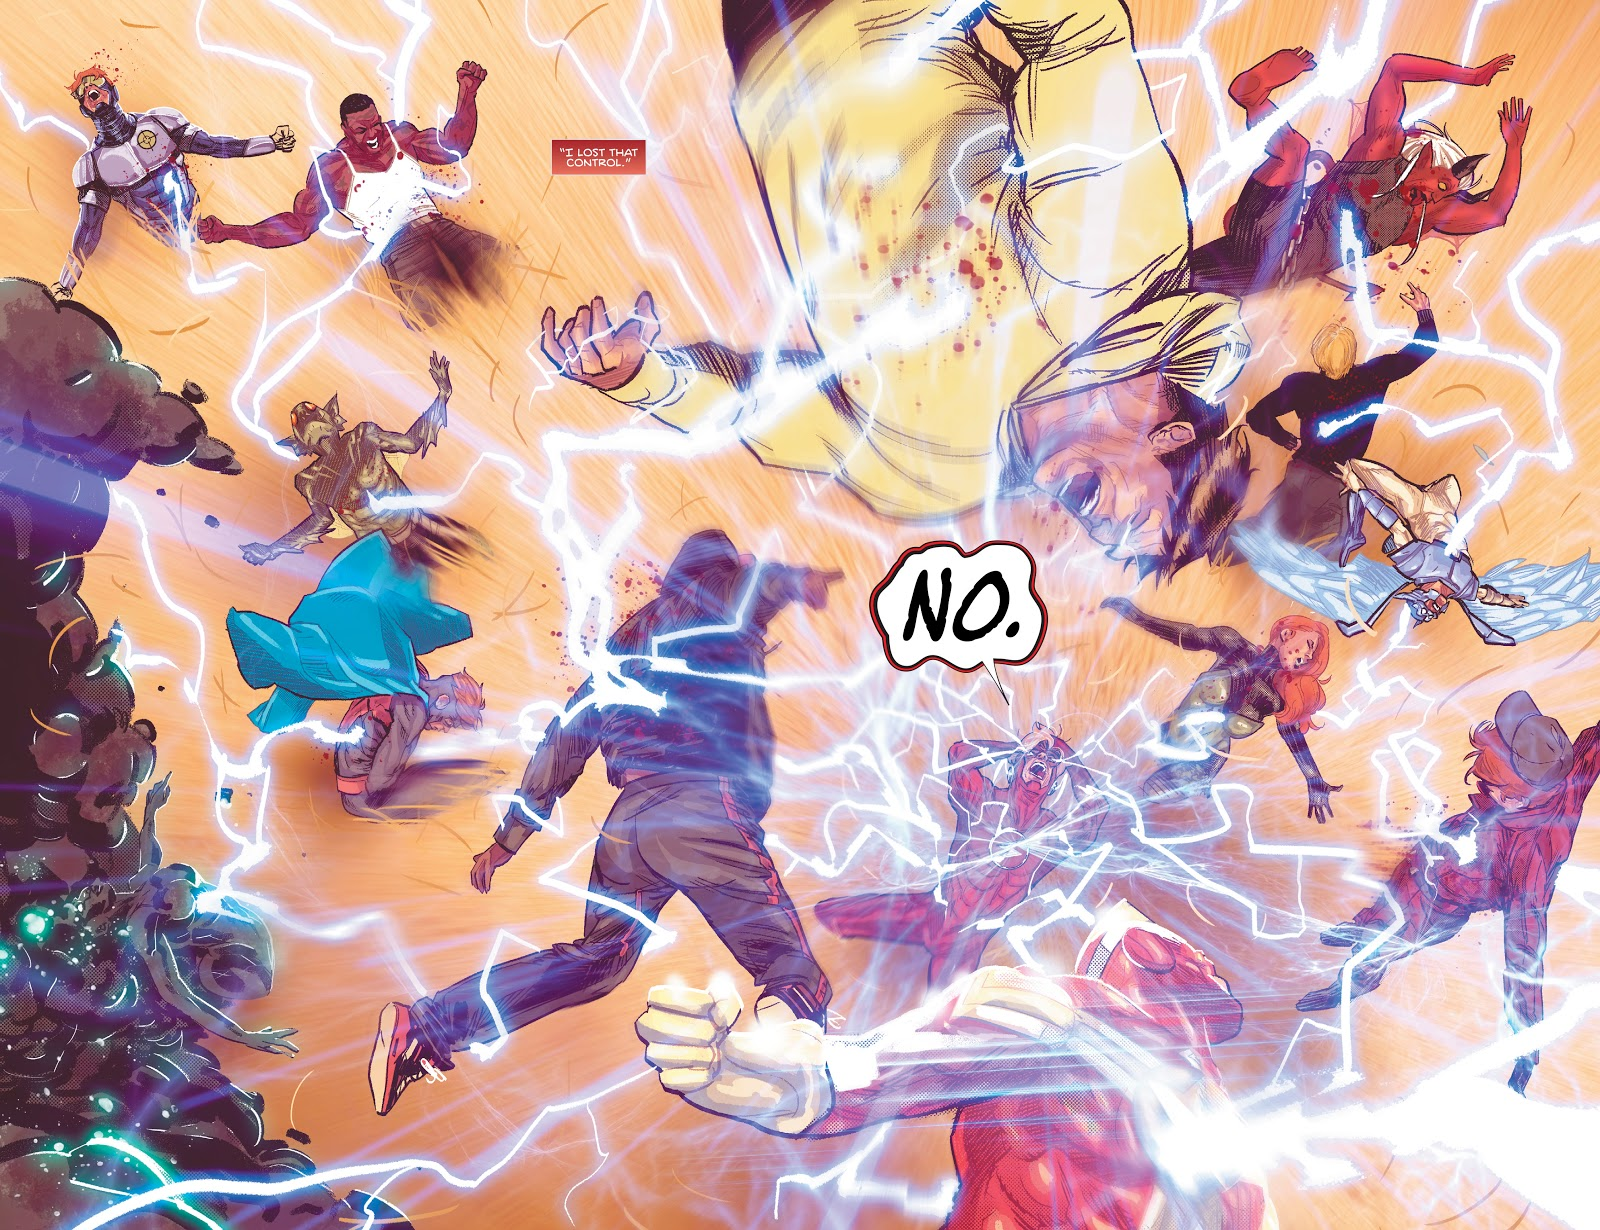 Wally West Kills Everyone in Sanctuary (Heroes In Crisis)